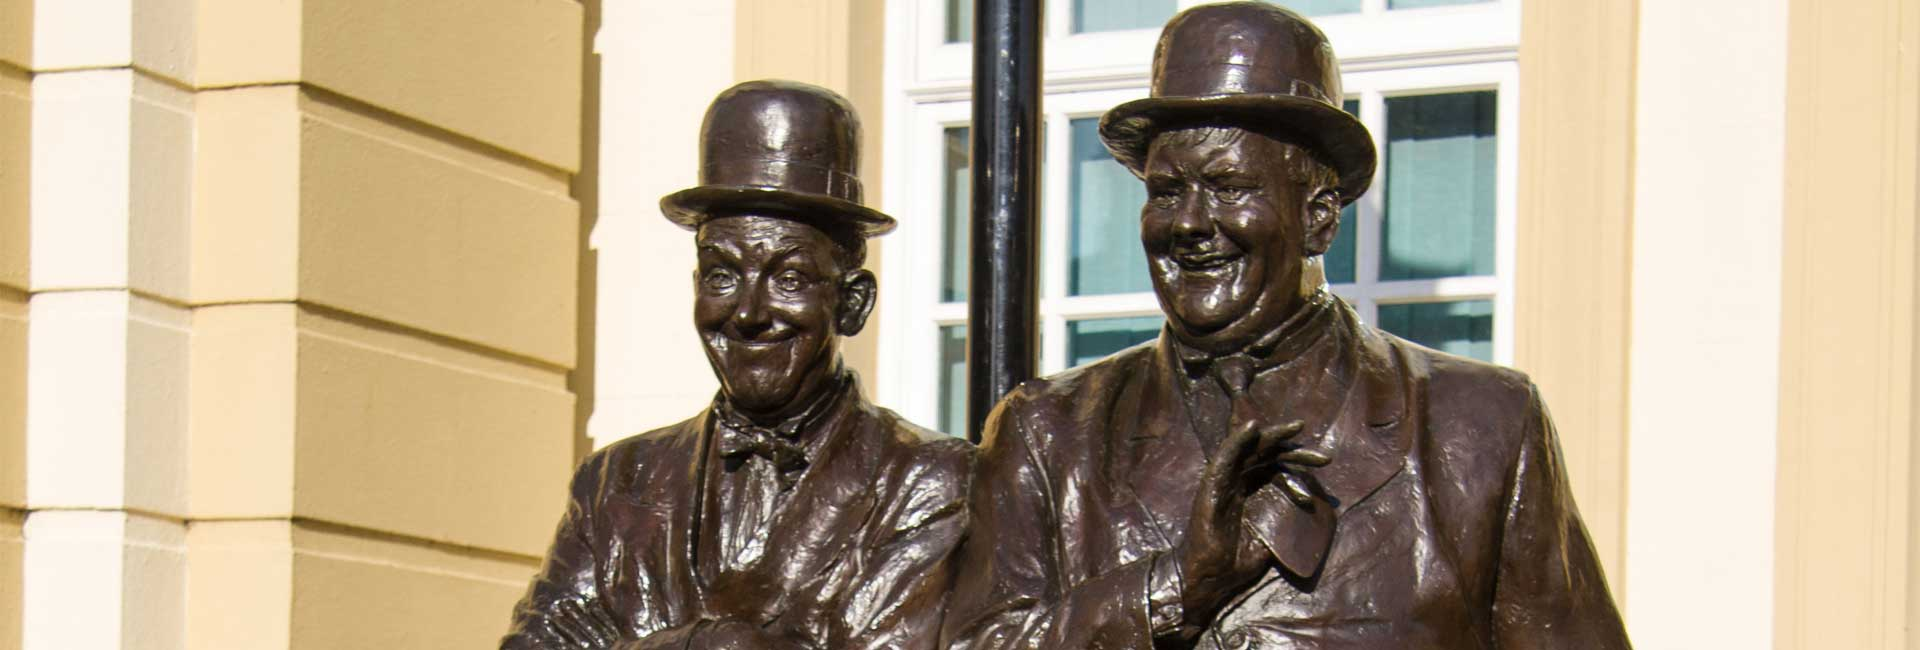 Laurel and Hardy Statue